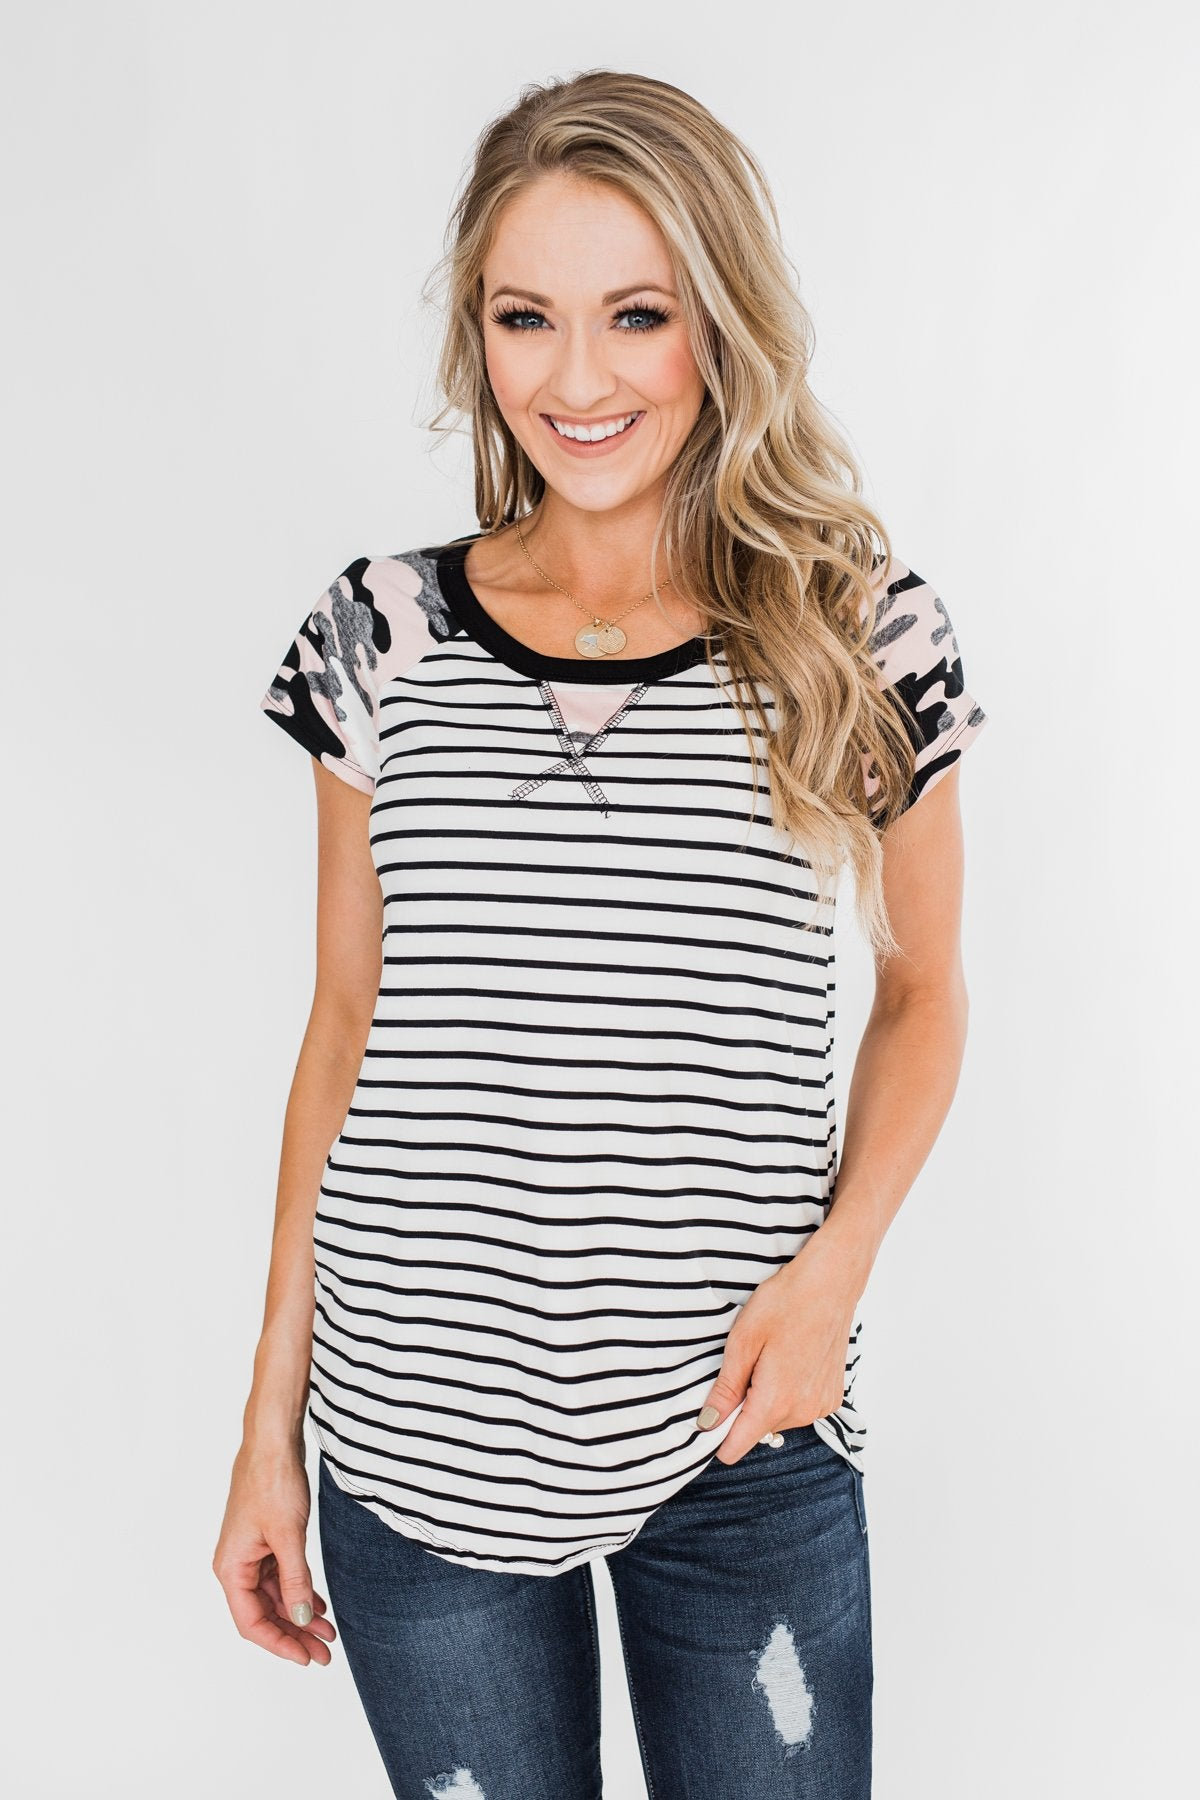 65f0b4a886888 Short Sleeve Camo & Stripes Top- Pink Camo & Ivory – The Pulse Boutique